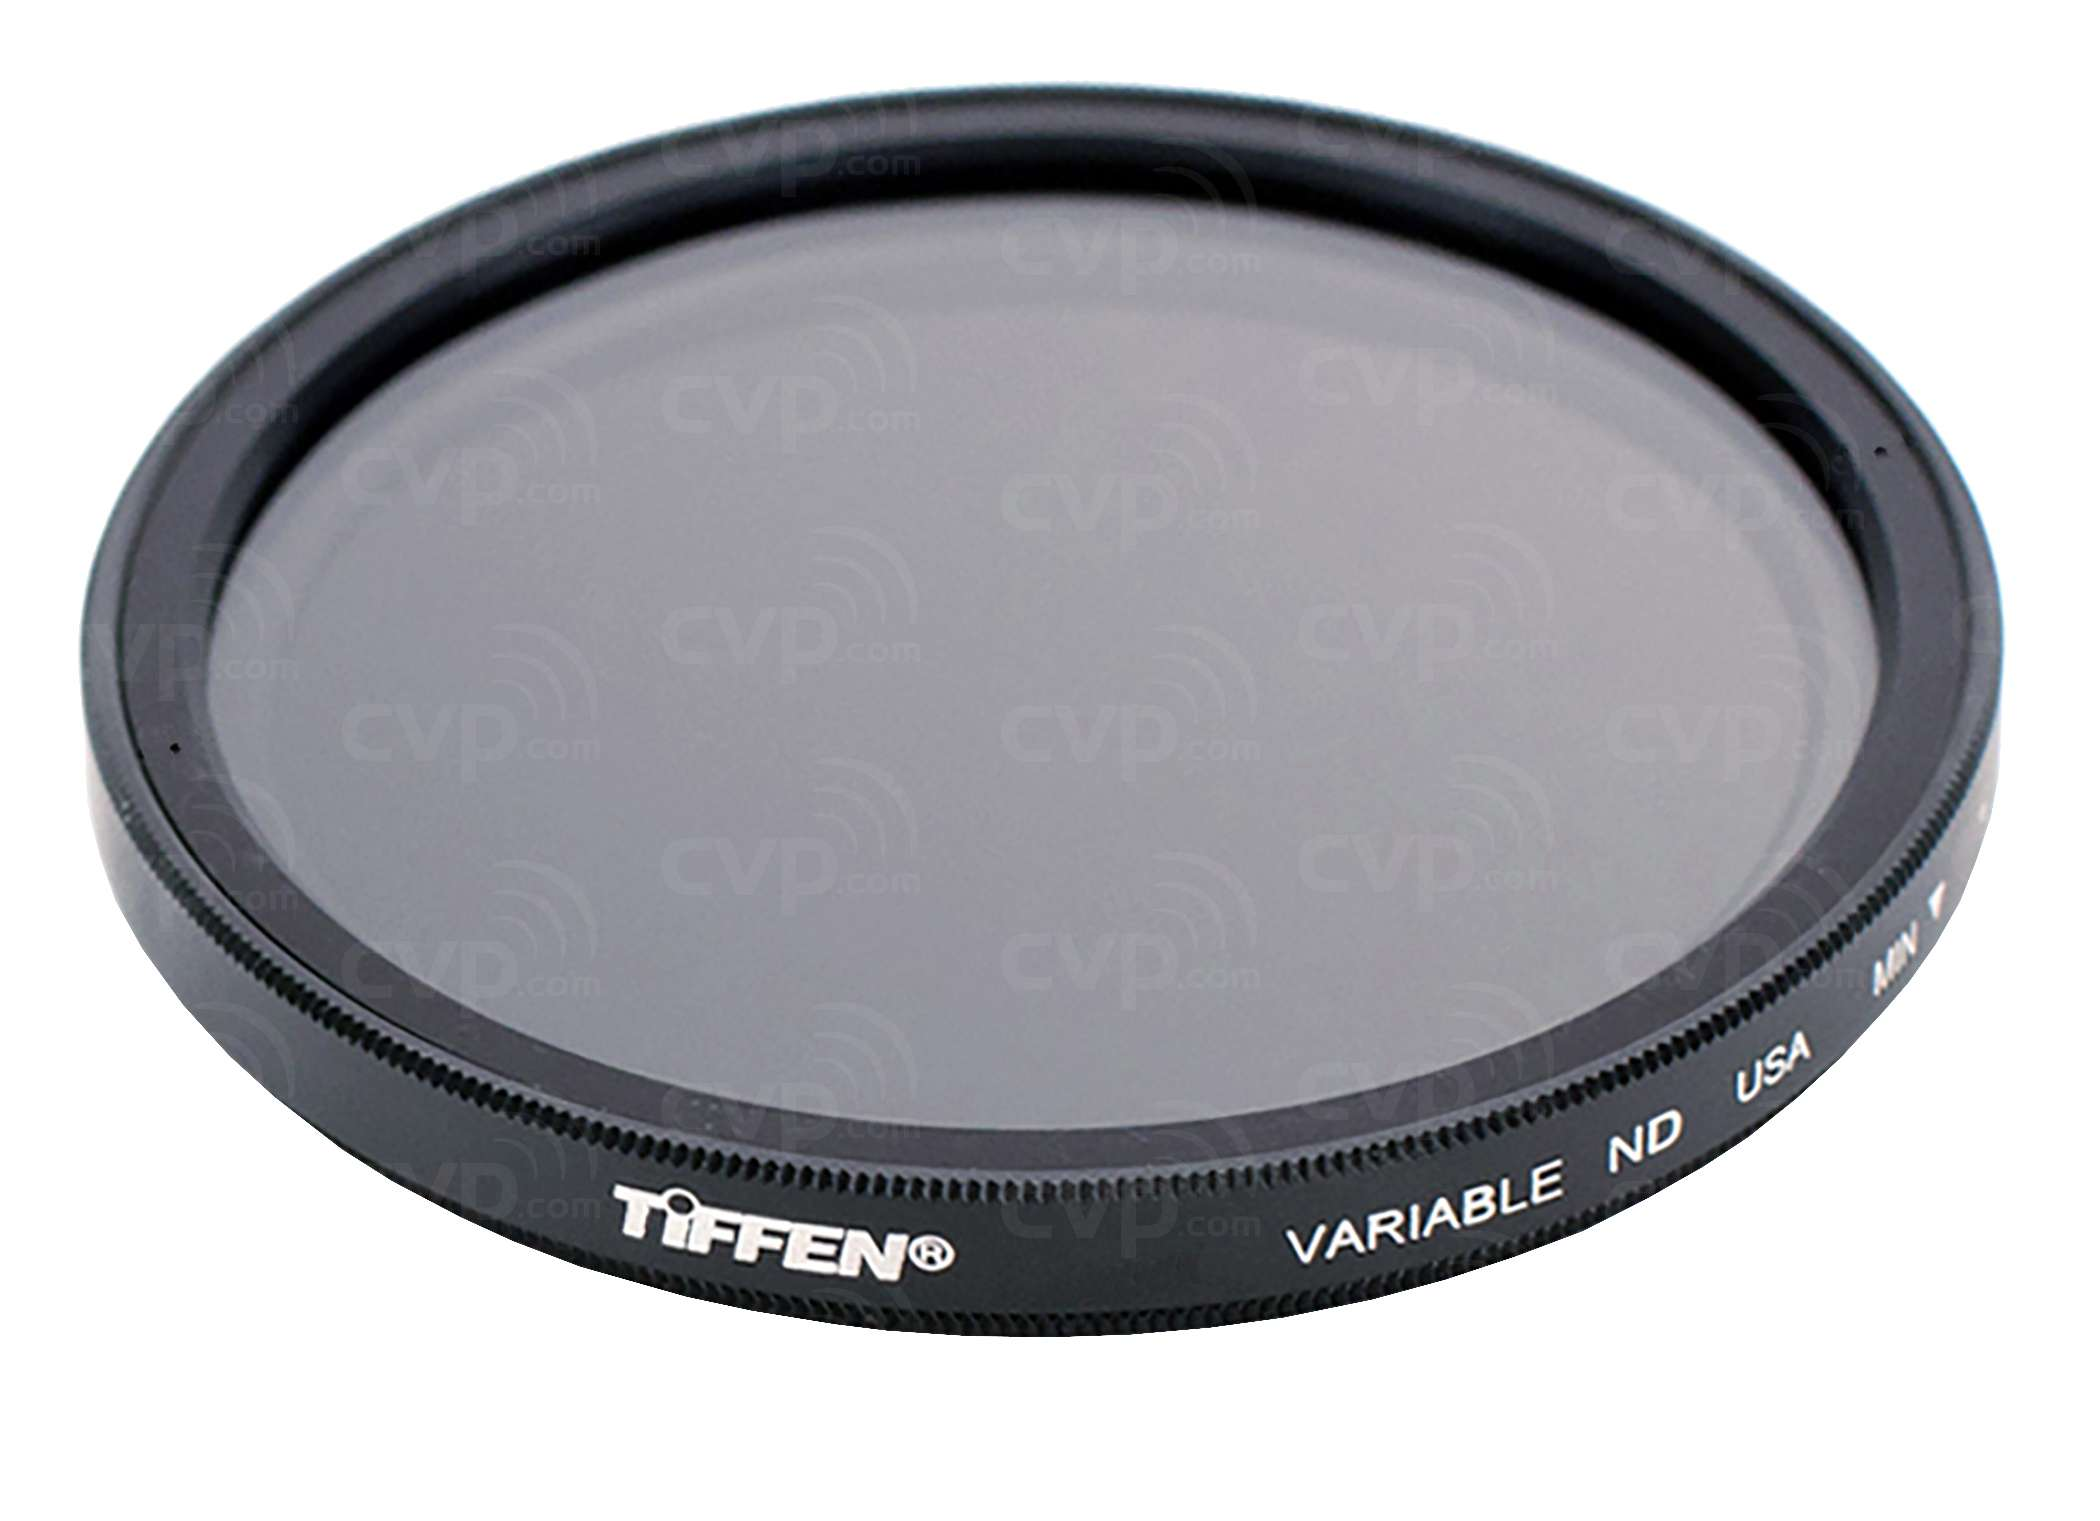 NEW 67mm Neutral Density ND2 Filter Double Thread 67 mm